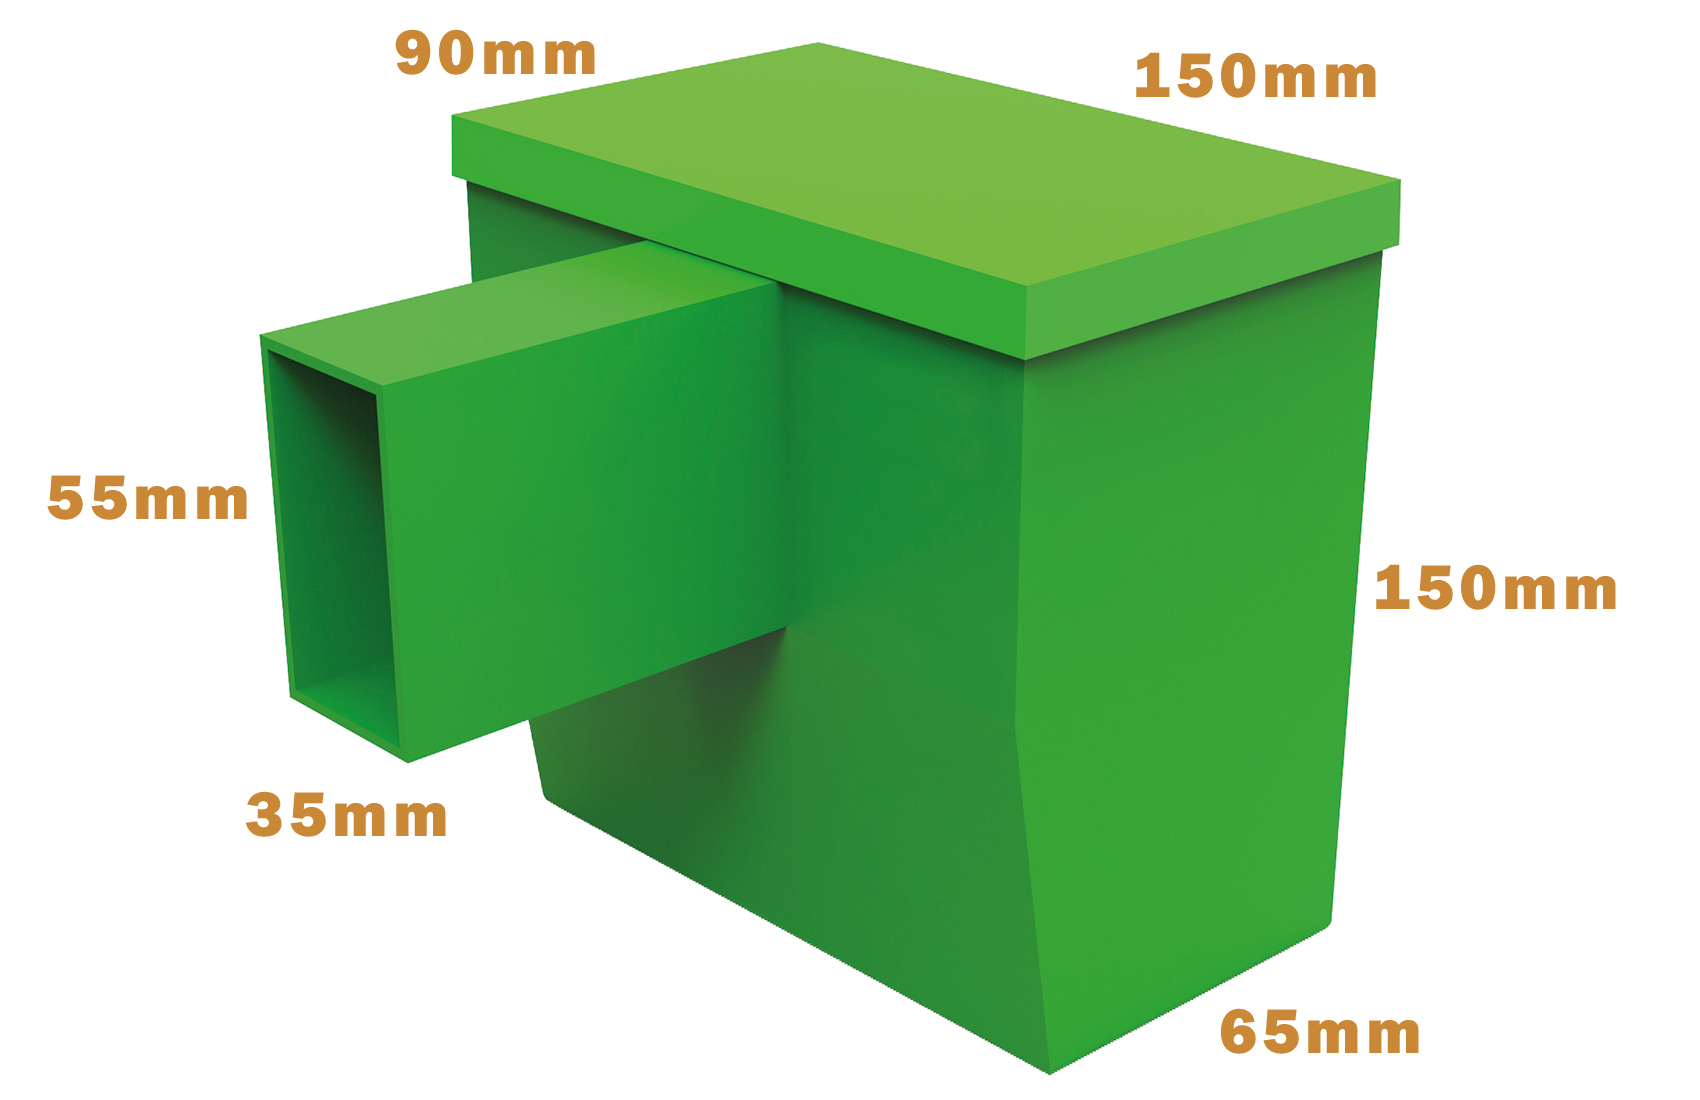 Cavity Wall Nesting Box - Dimensions